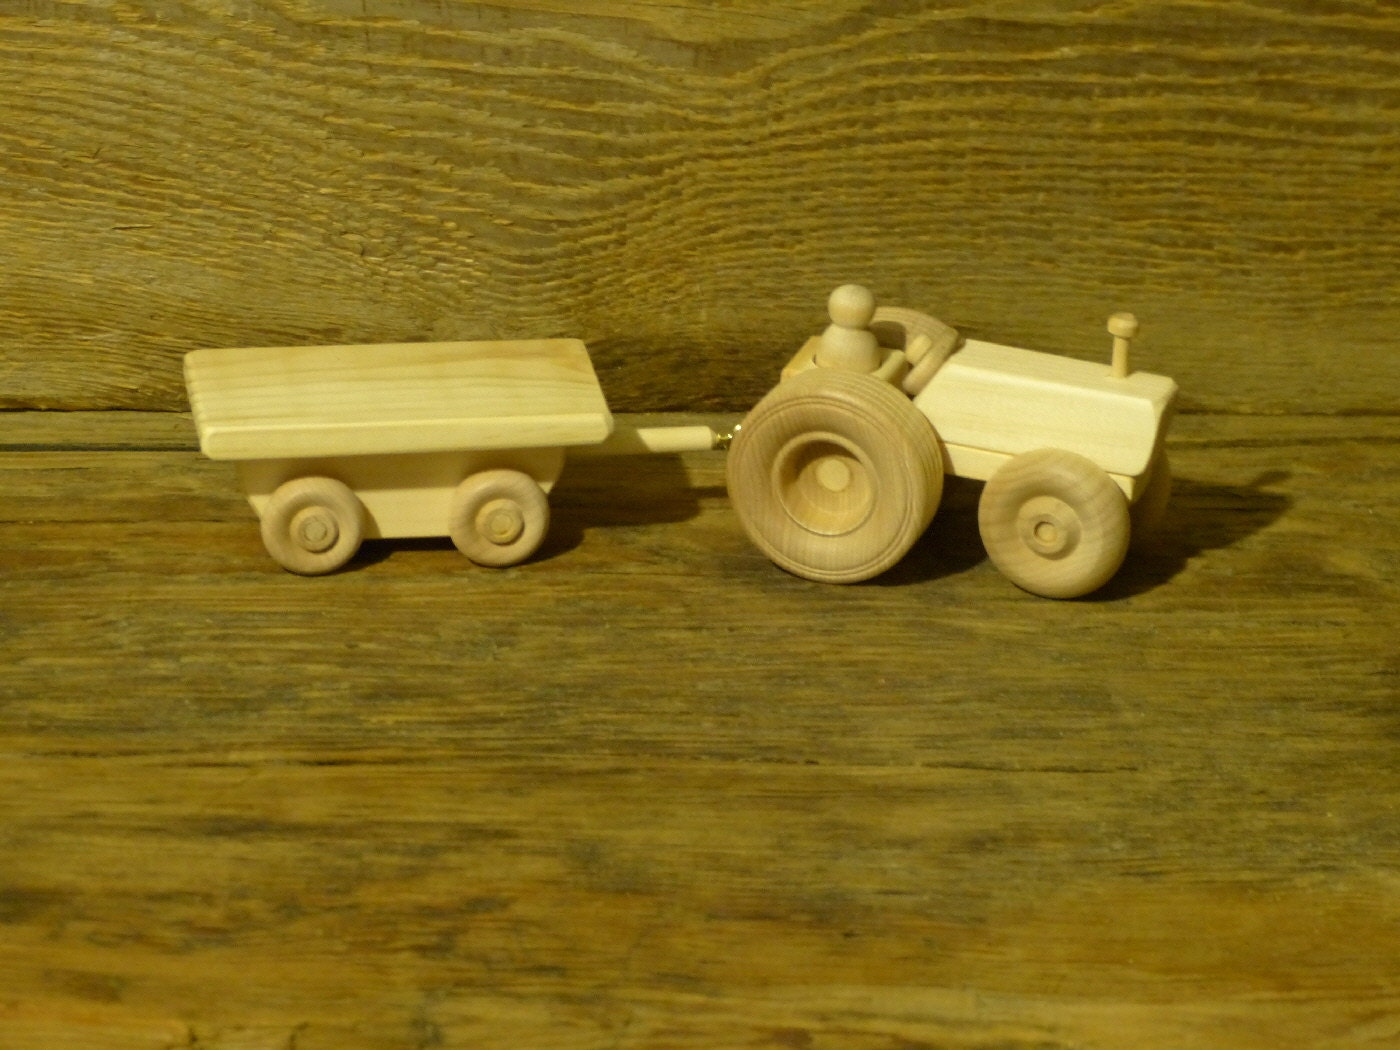 Wood Toy Farm Tractor and Wagon Wooden Toys by OutOnALimbADK